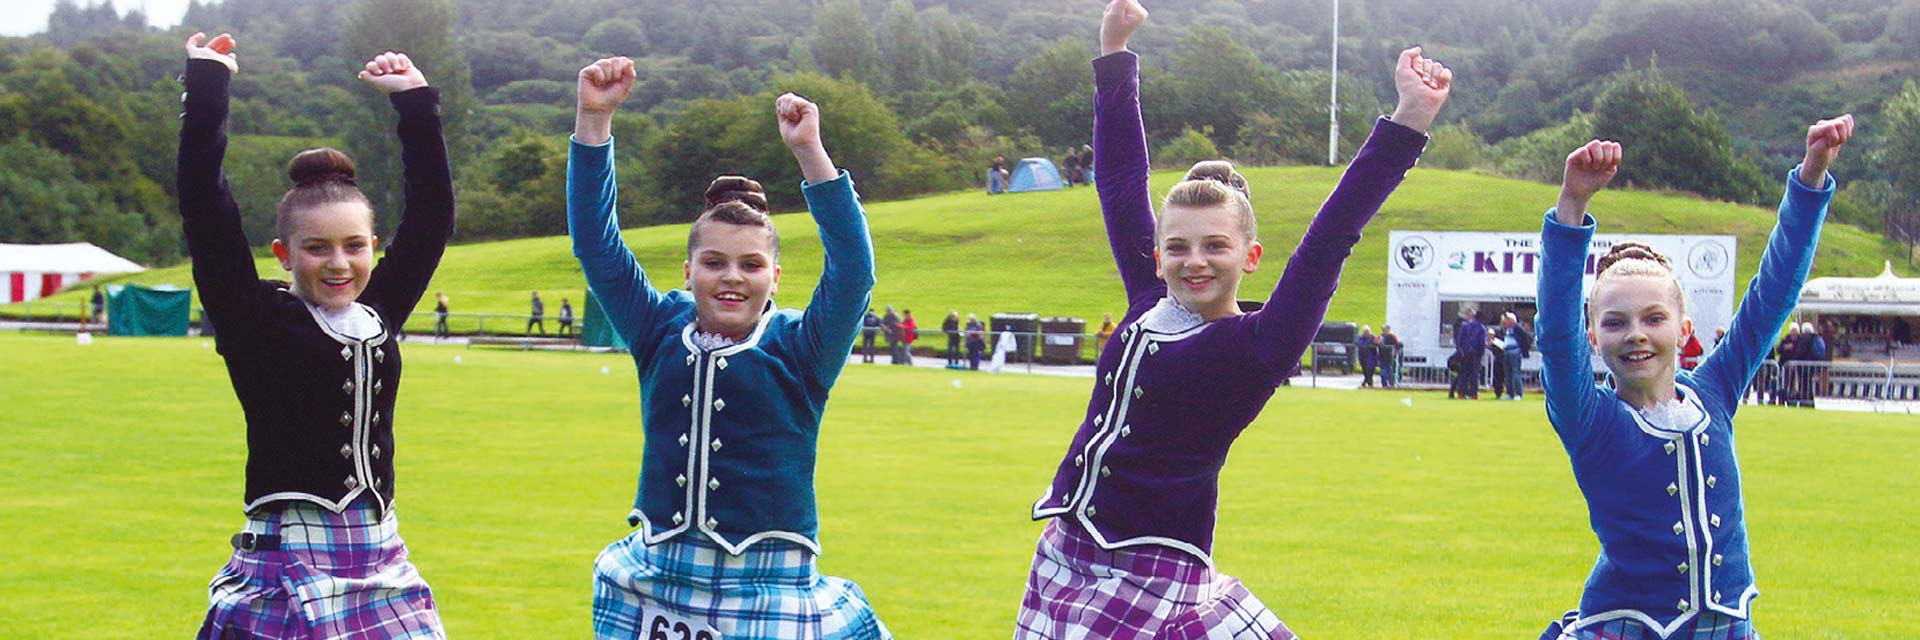 Highland Dance competitions are an Oban Games highlight